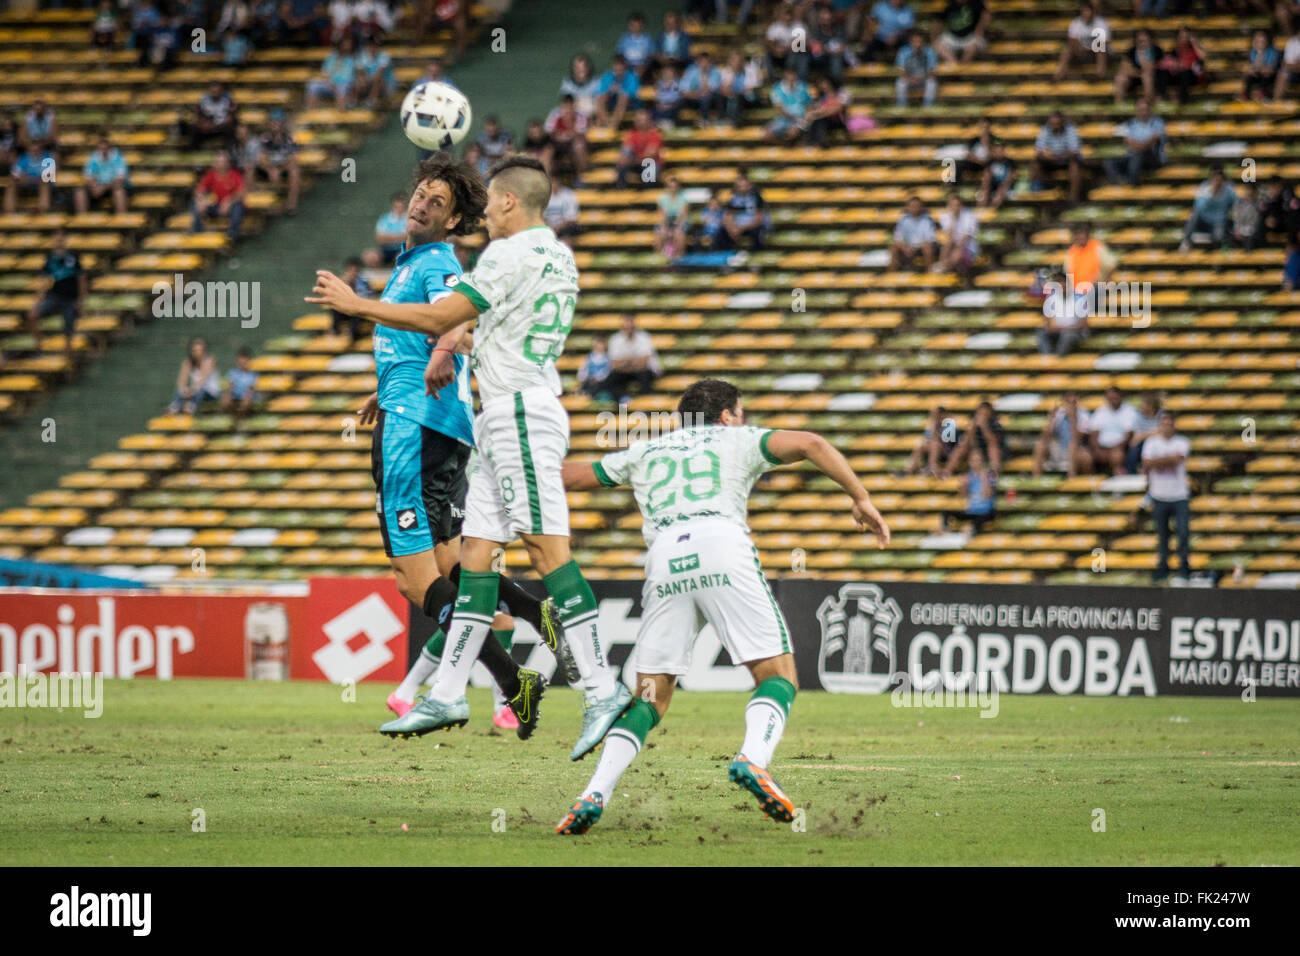 Cordoba, Argentina. 5th March, 2016. Maximiliano Caire, Defense de Club Atletico Sarmiento during a match between - Stock Image